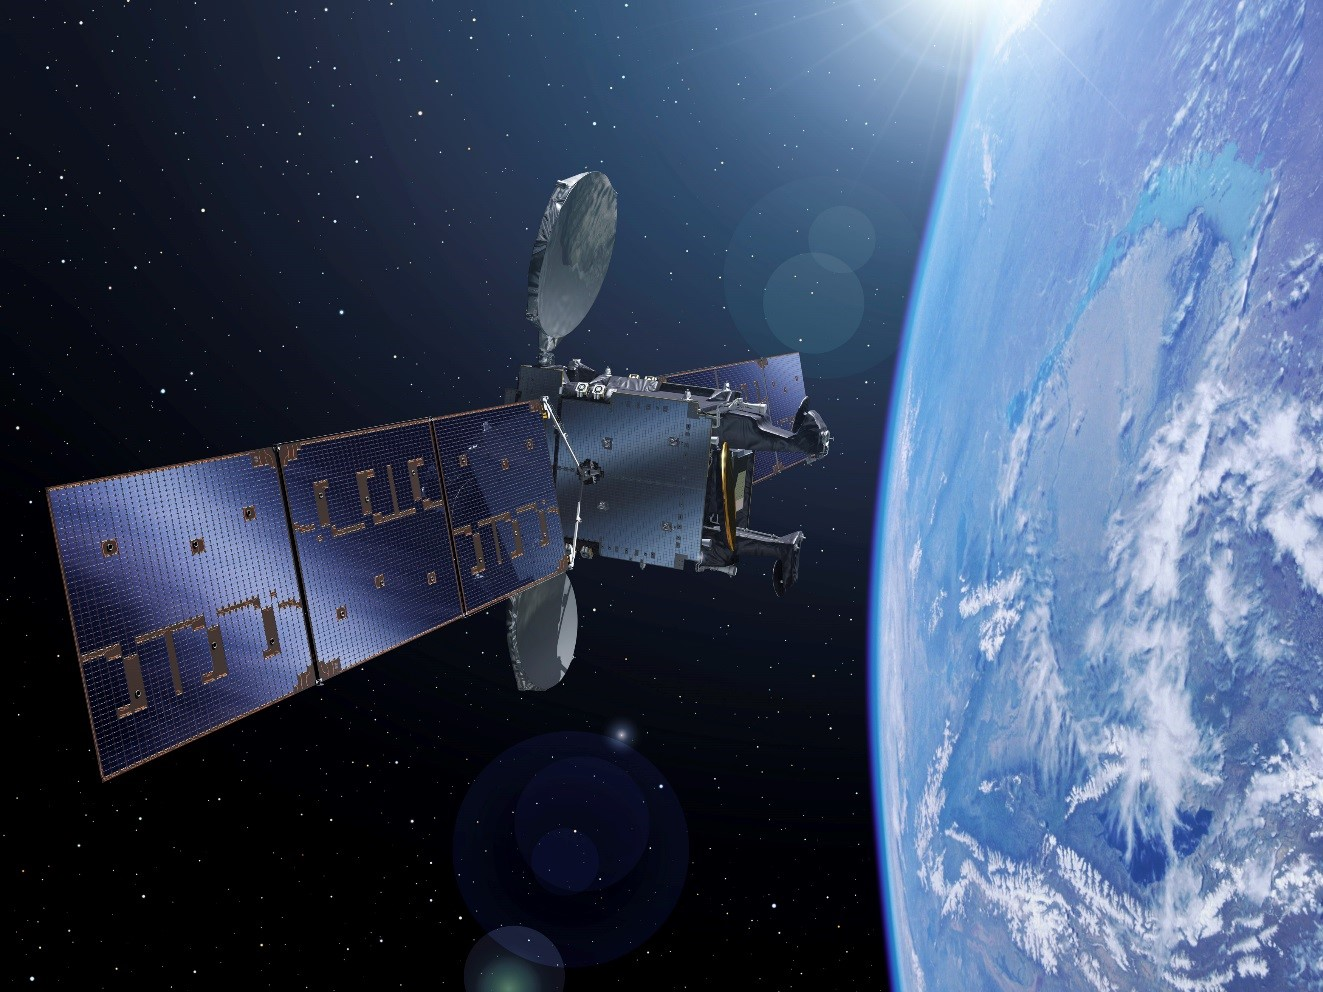 vs16-hispasat-satellite-img